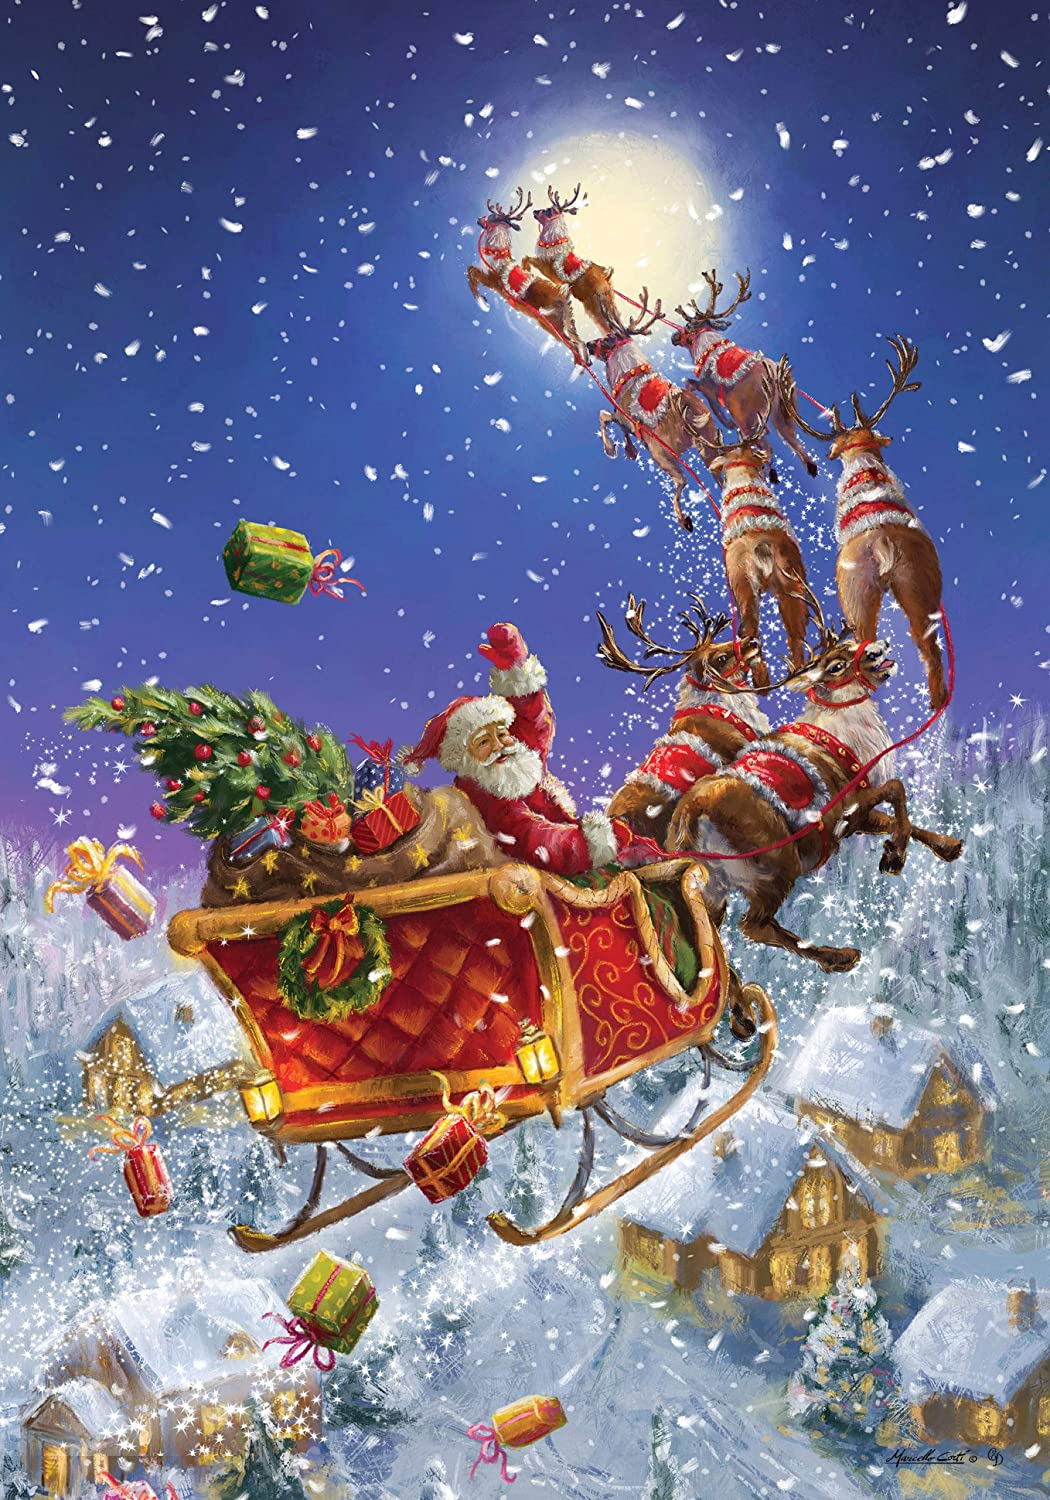 Custom Decor Santa Sleigh - Garden Size, Decorative Double Sided, Licensed and Copyrighted Flag - Printed in The USA Inc. - 12 Inch X 18 Inch Approx. Size